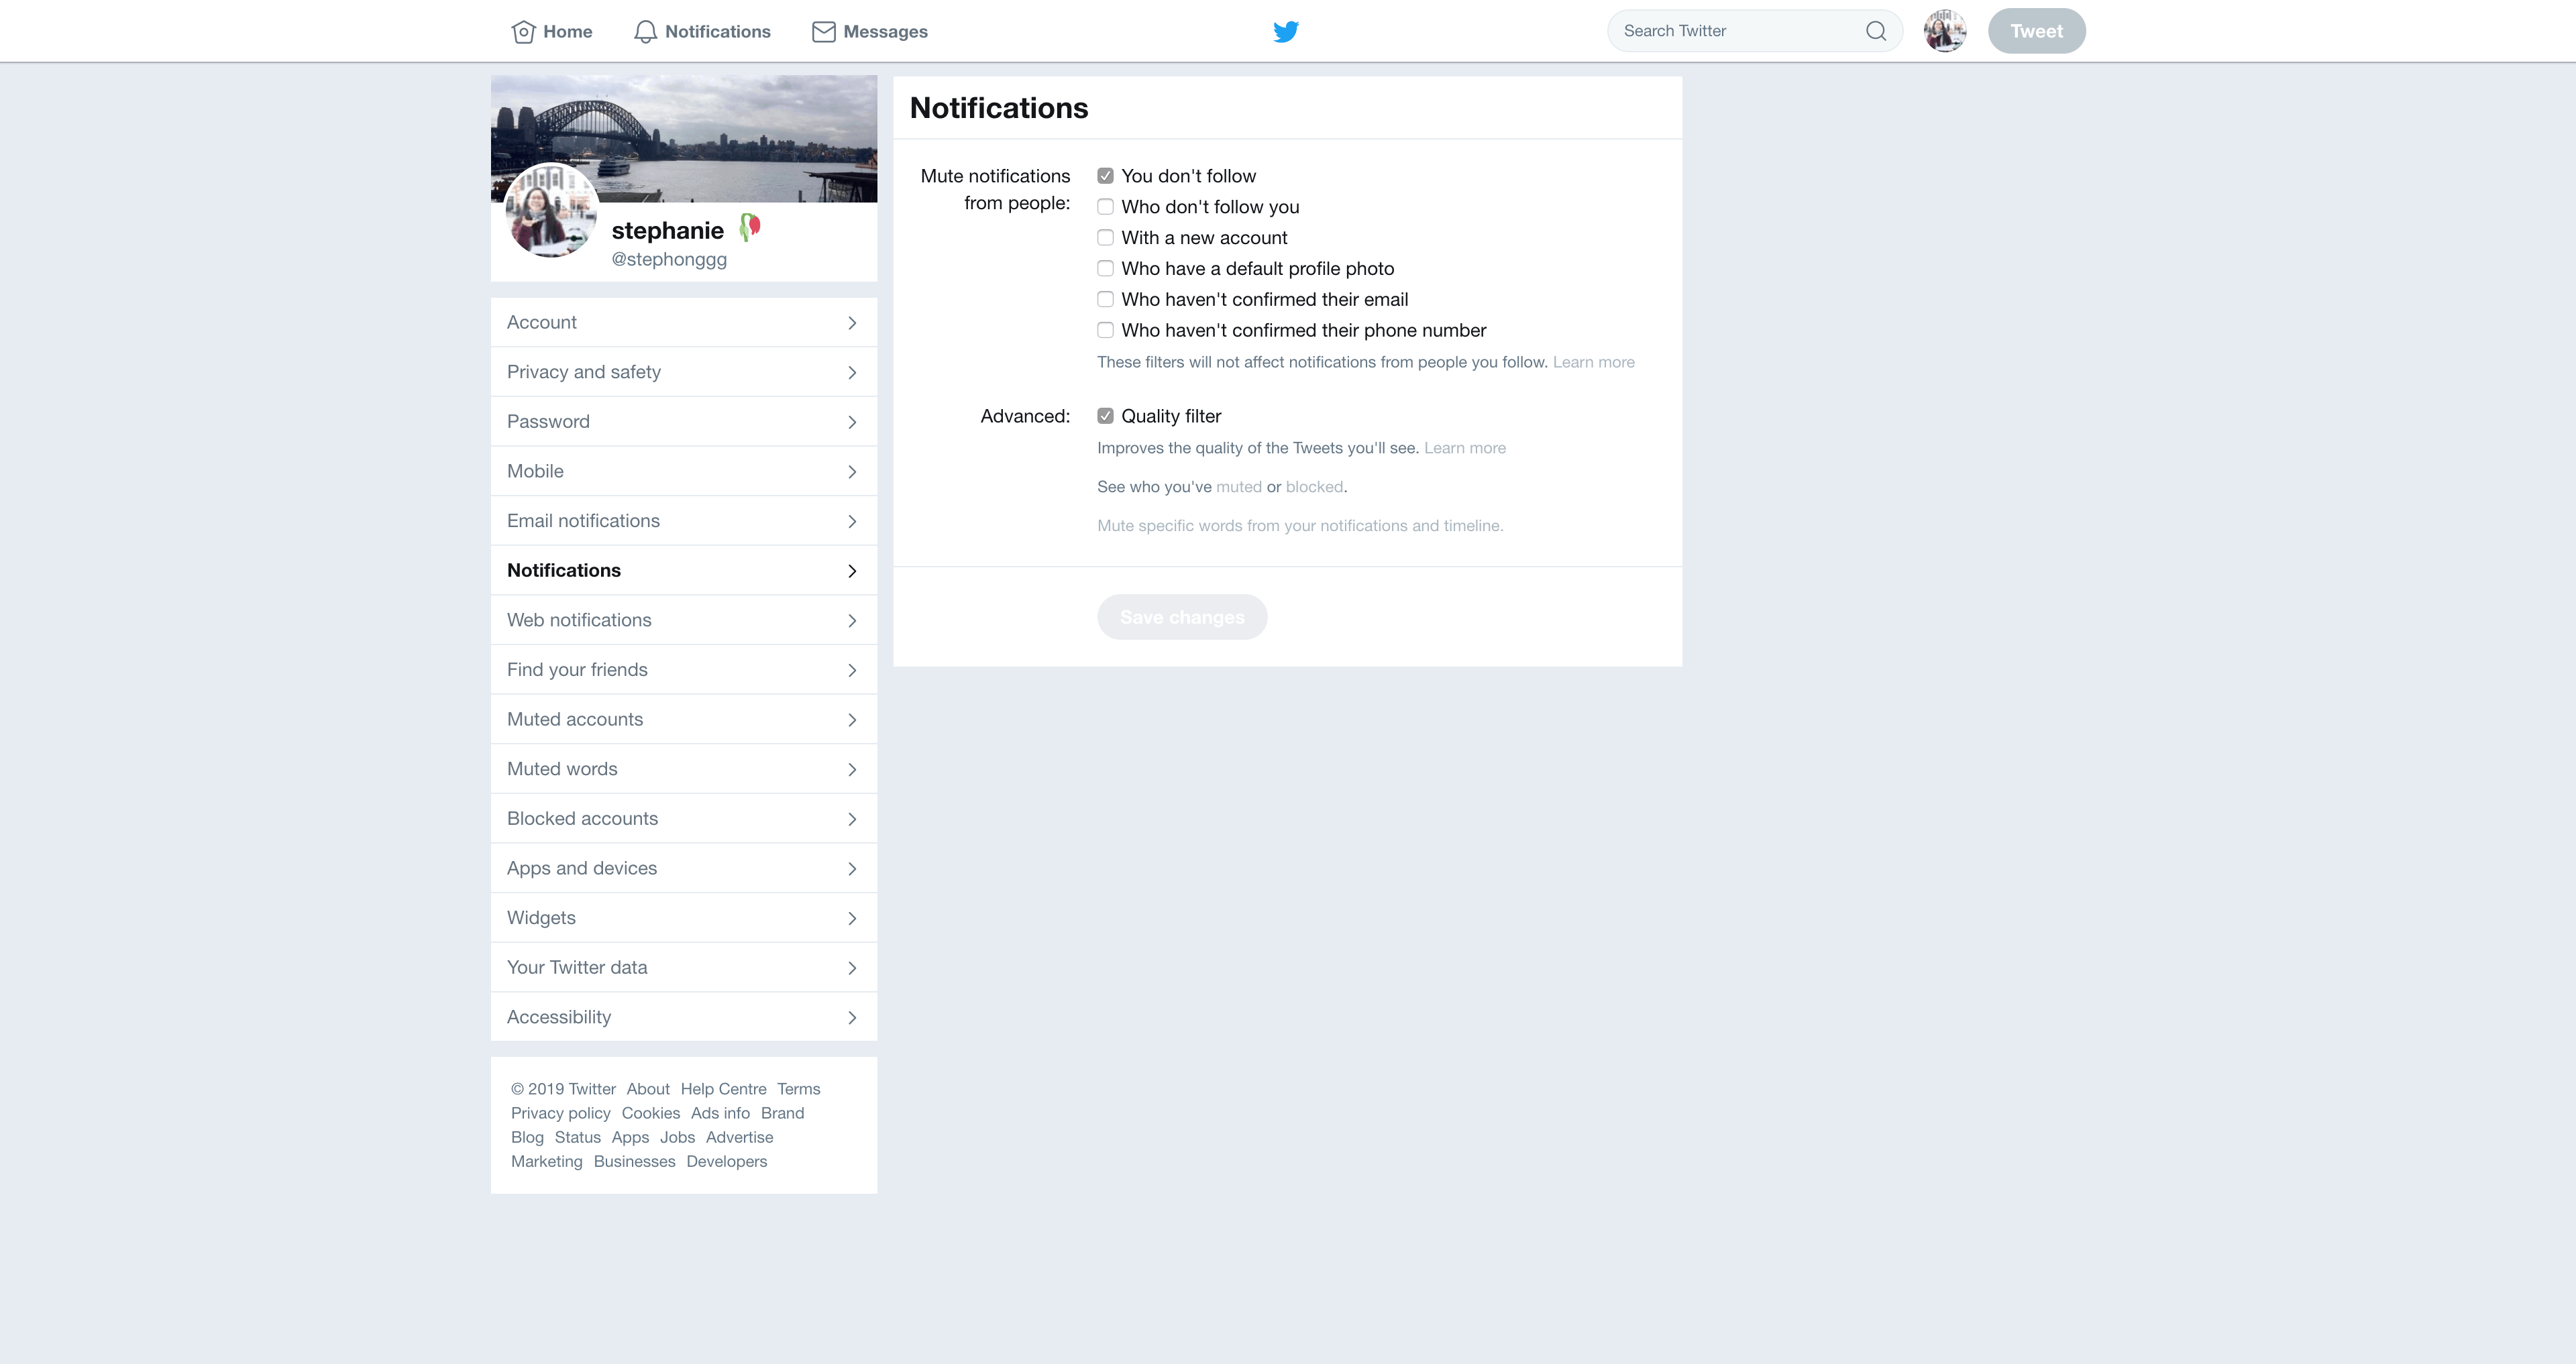 Notifications Settings by Twitter